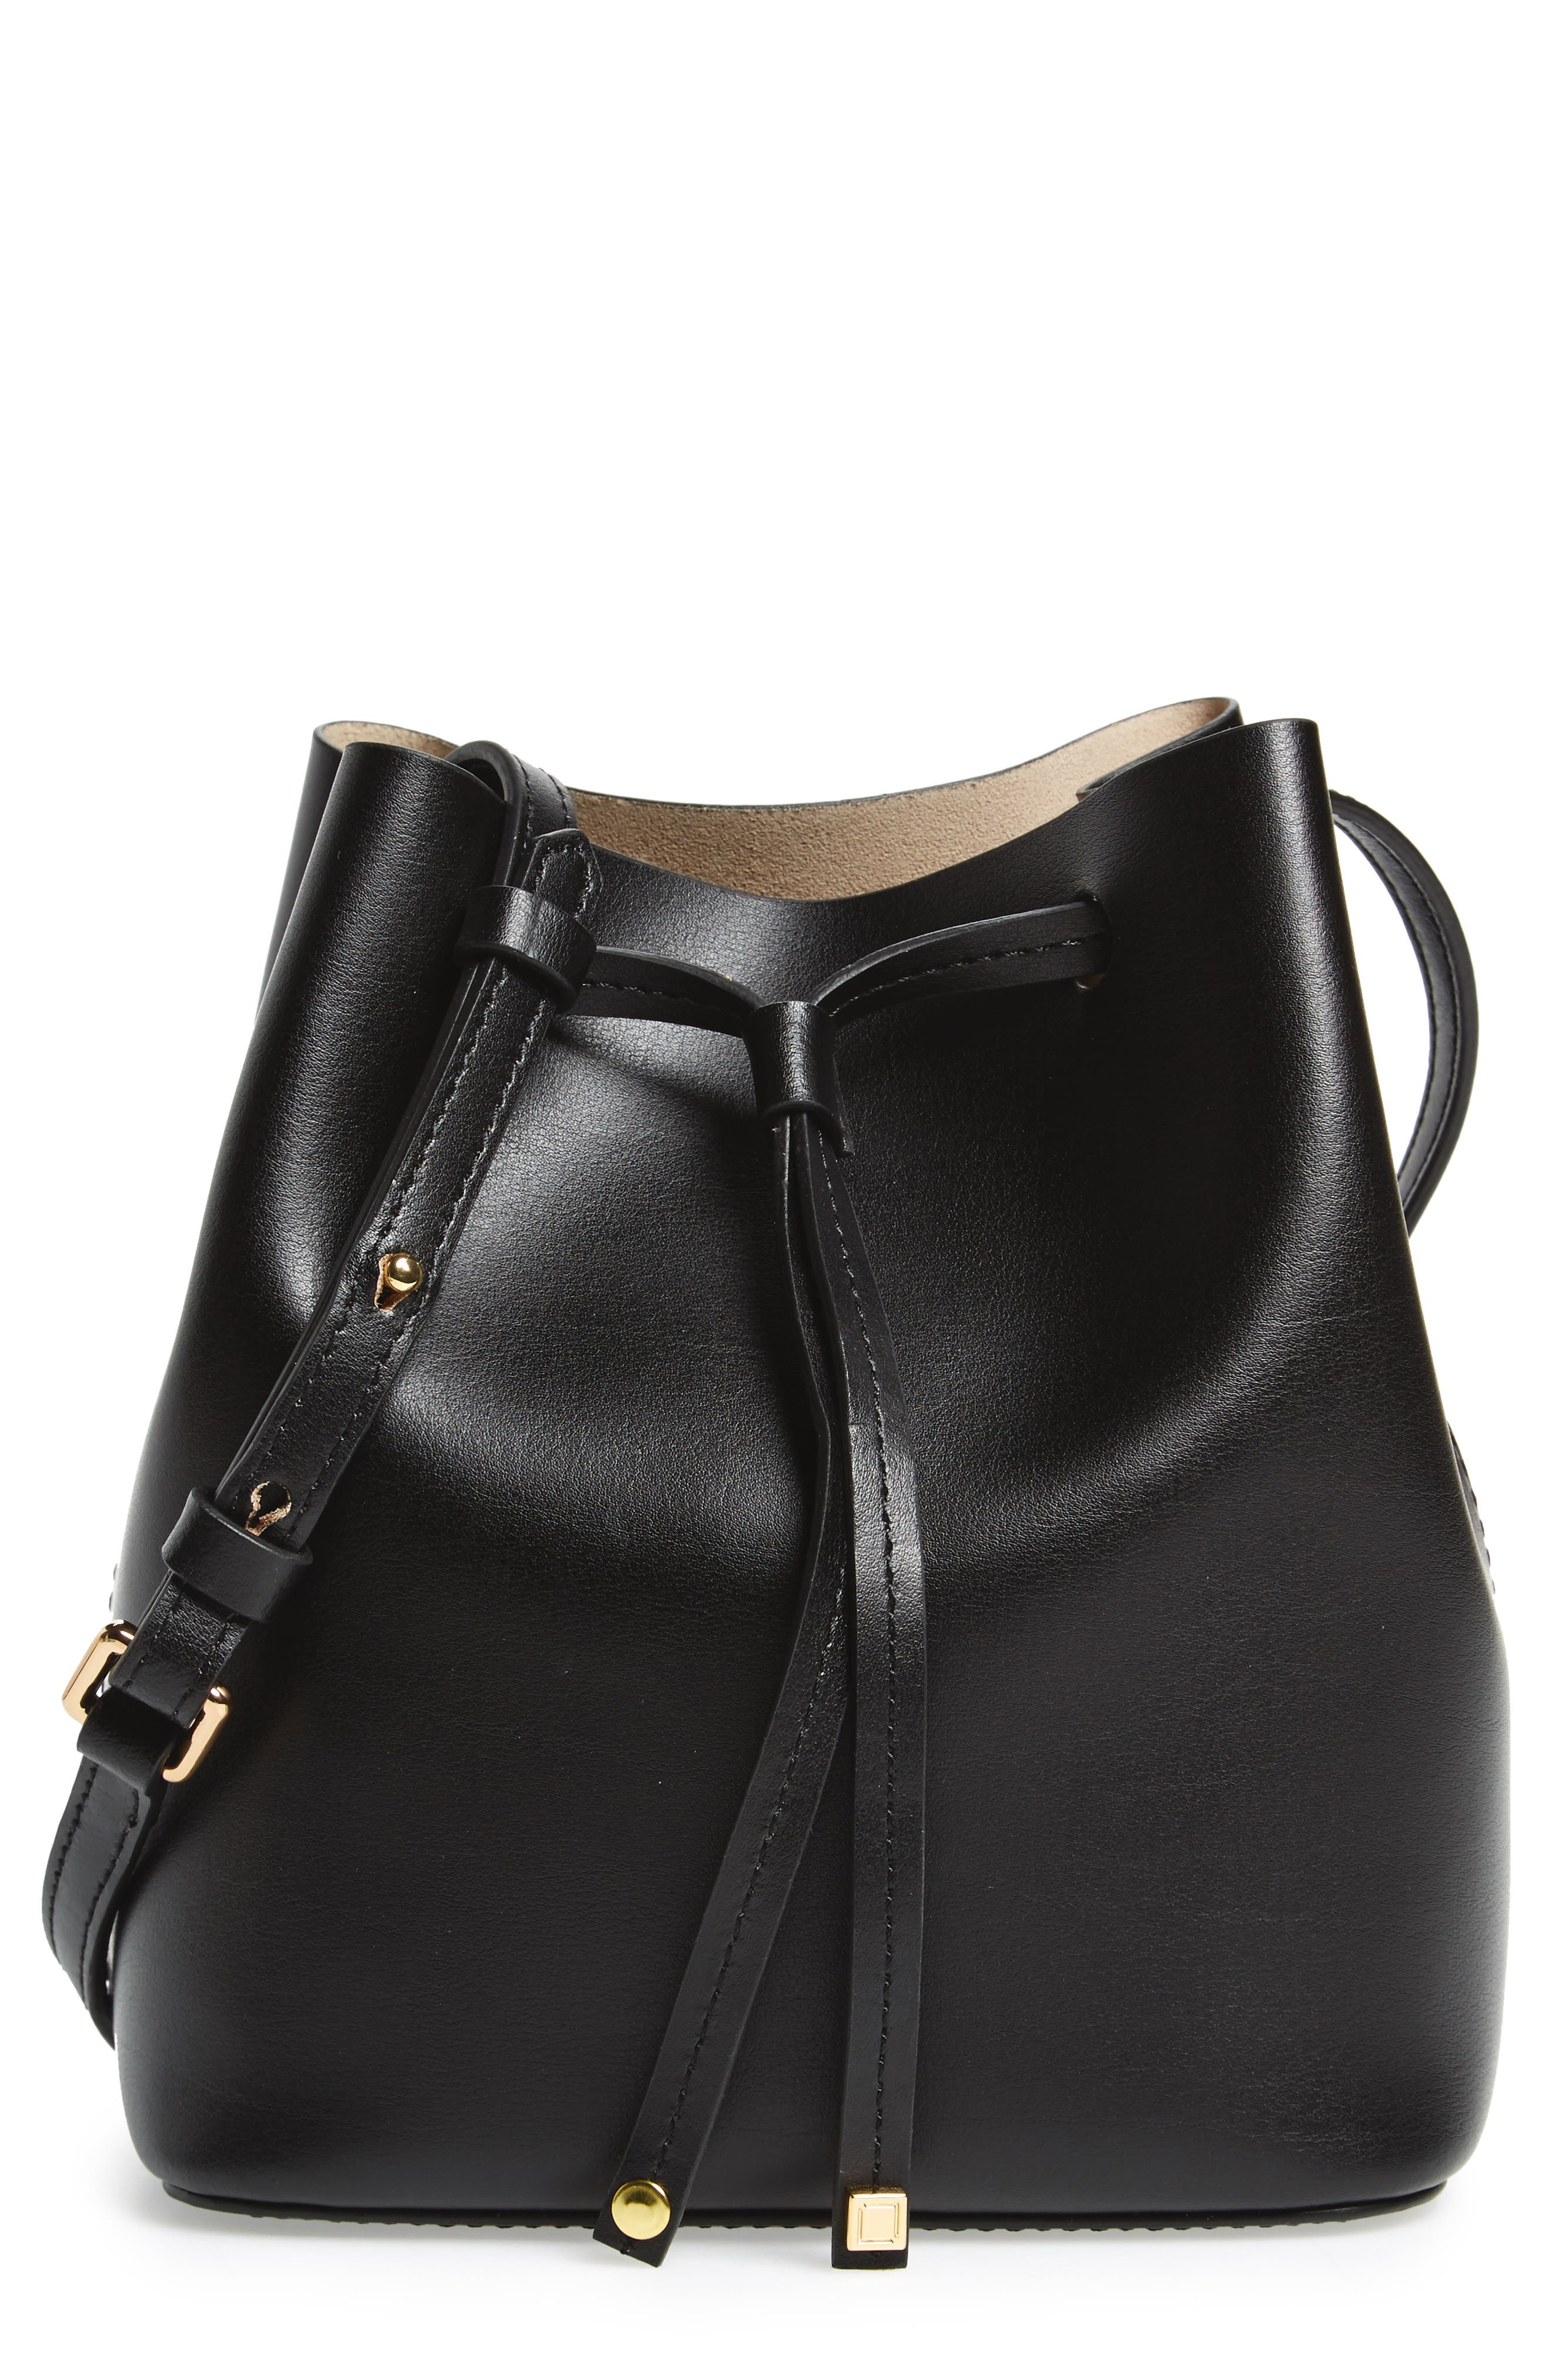 LODIS Small Silicon Valley Blake RFID Leather Bucket Bag,                         Main,                         color, Black/ Taupe